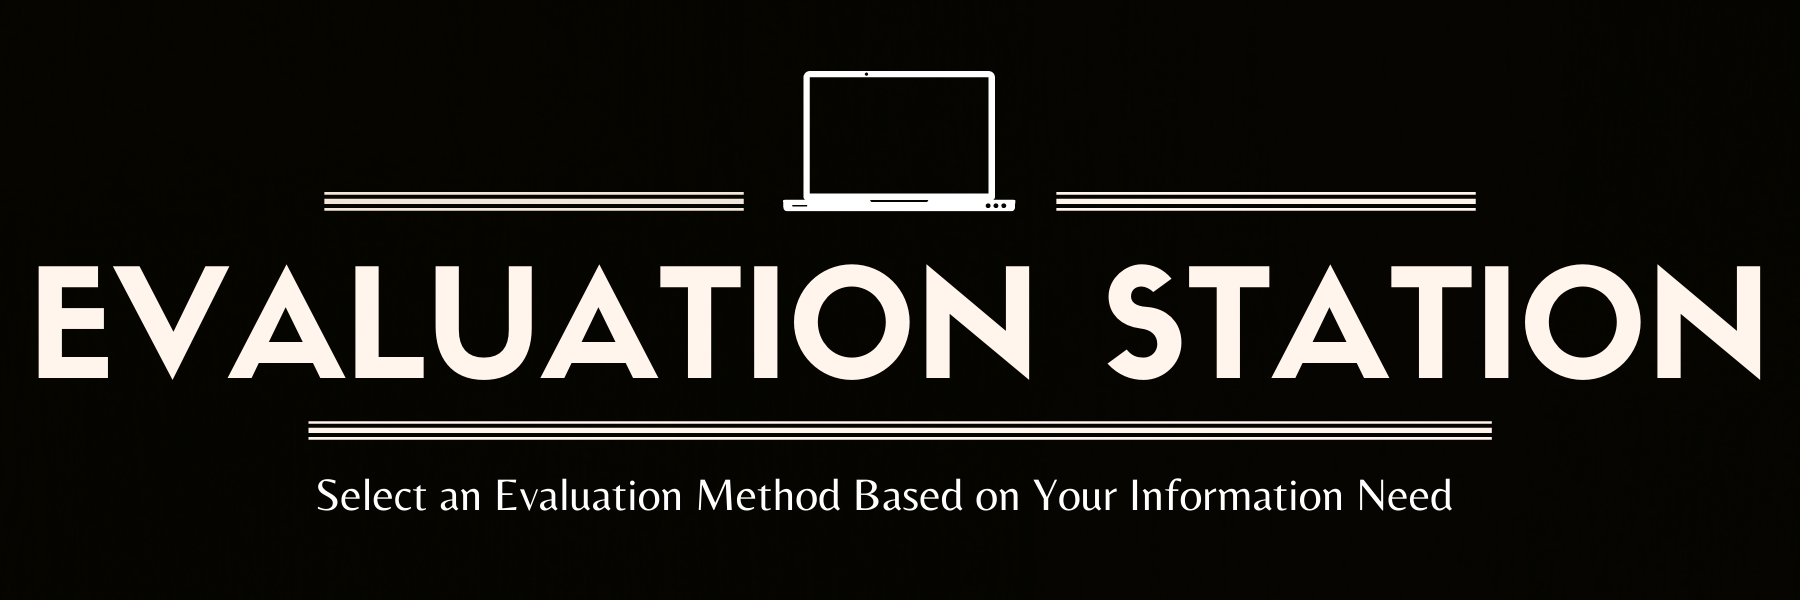 Evaluation Station: Select an Evaluation Method Based on Your Information Need